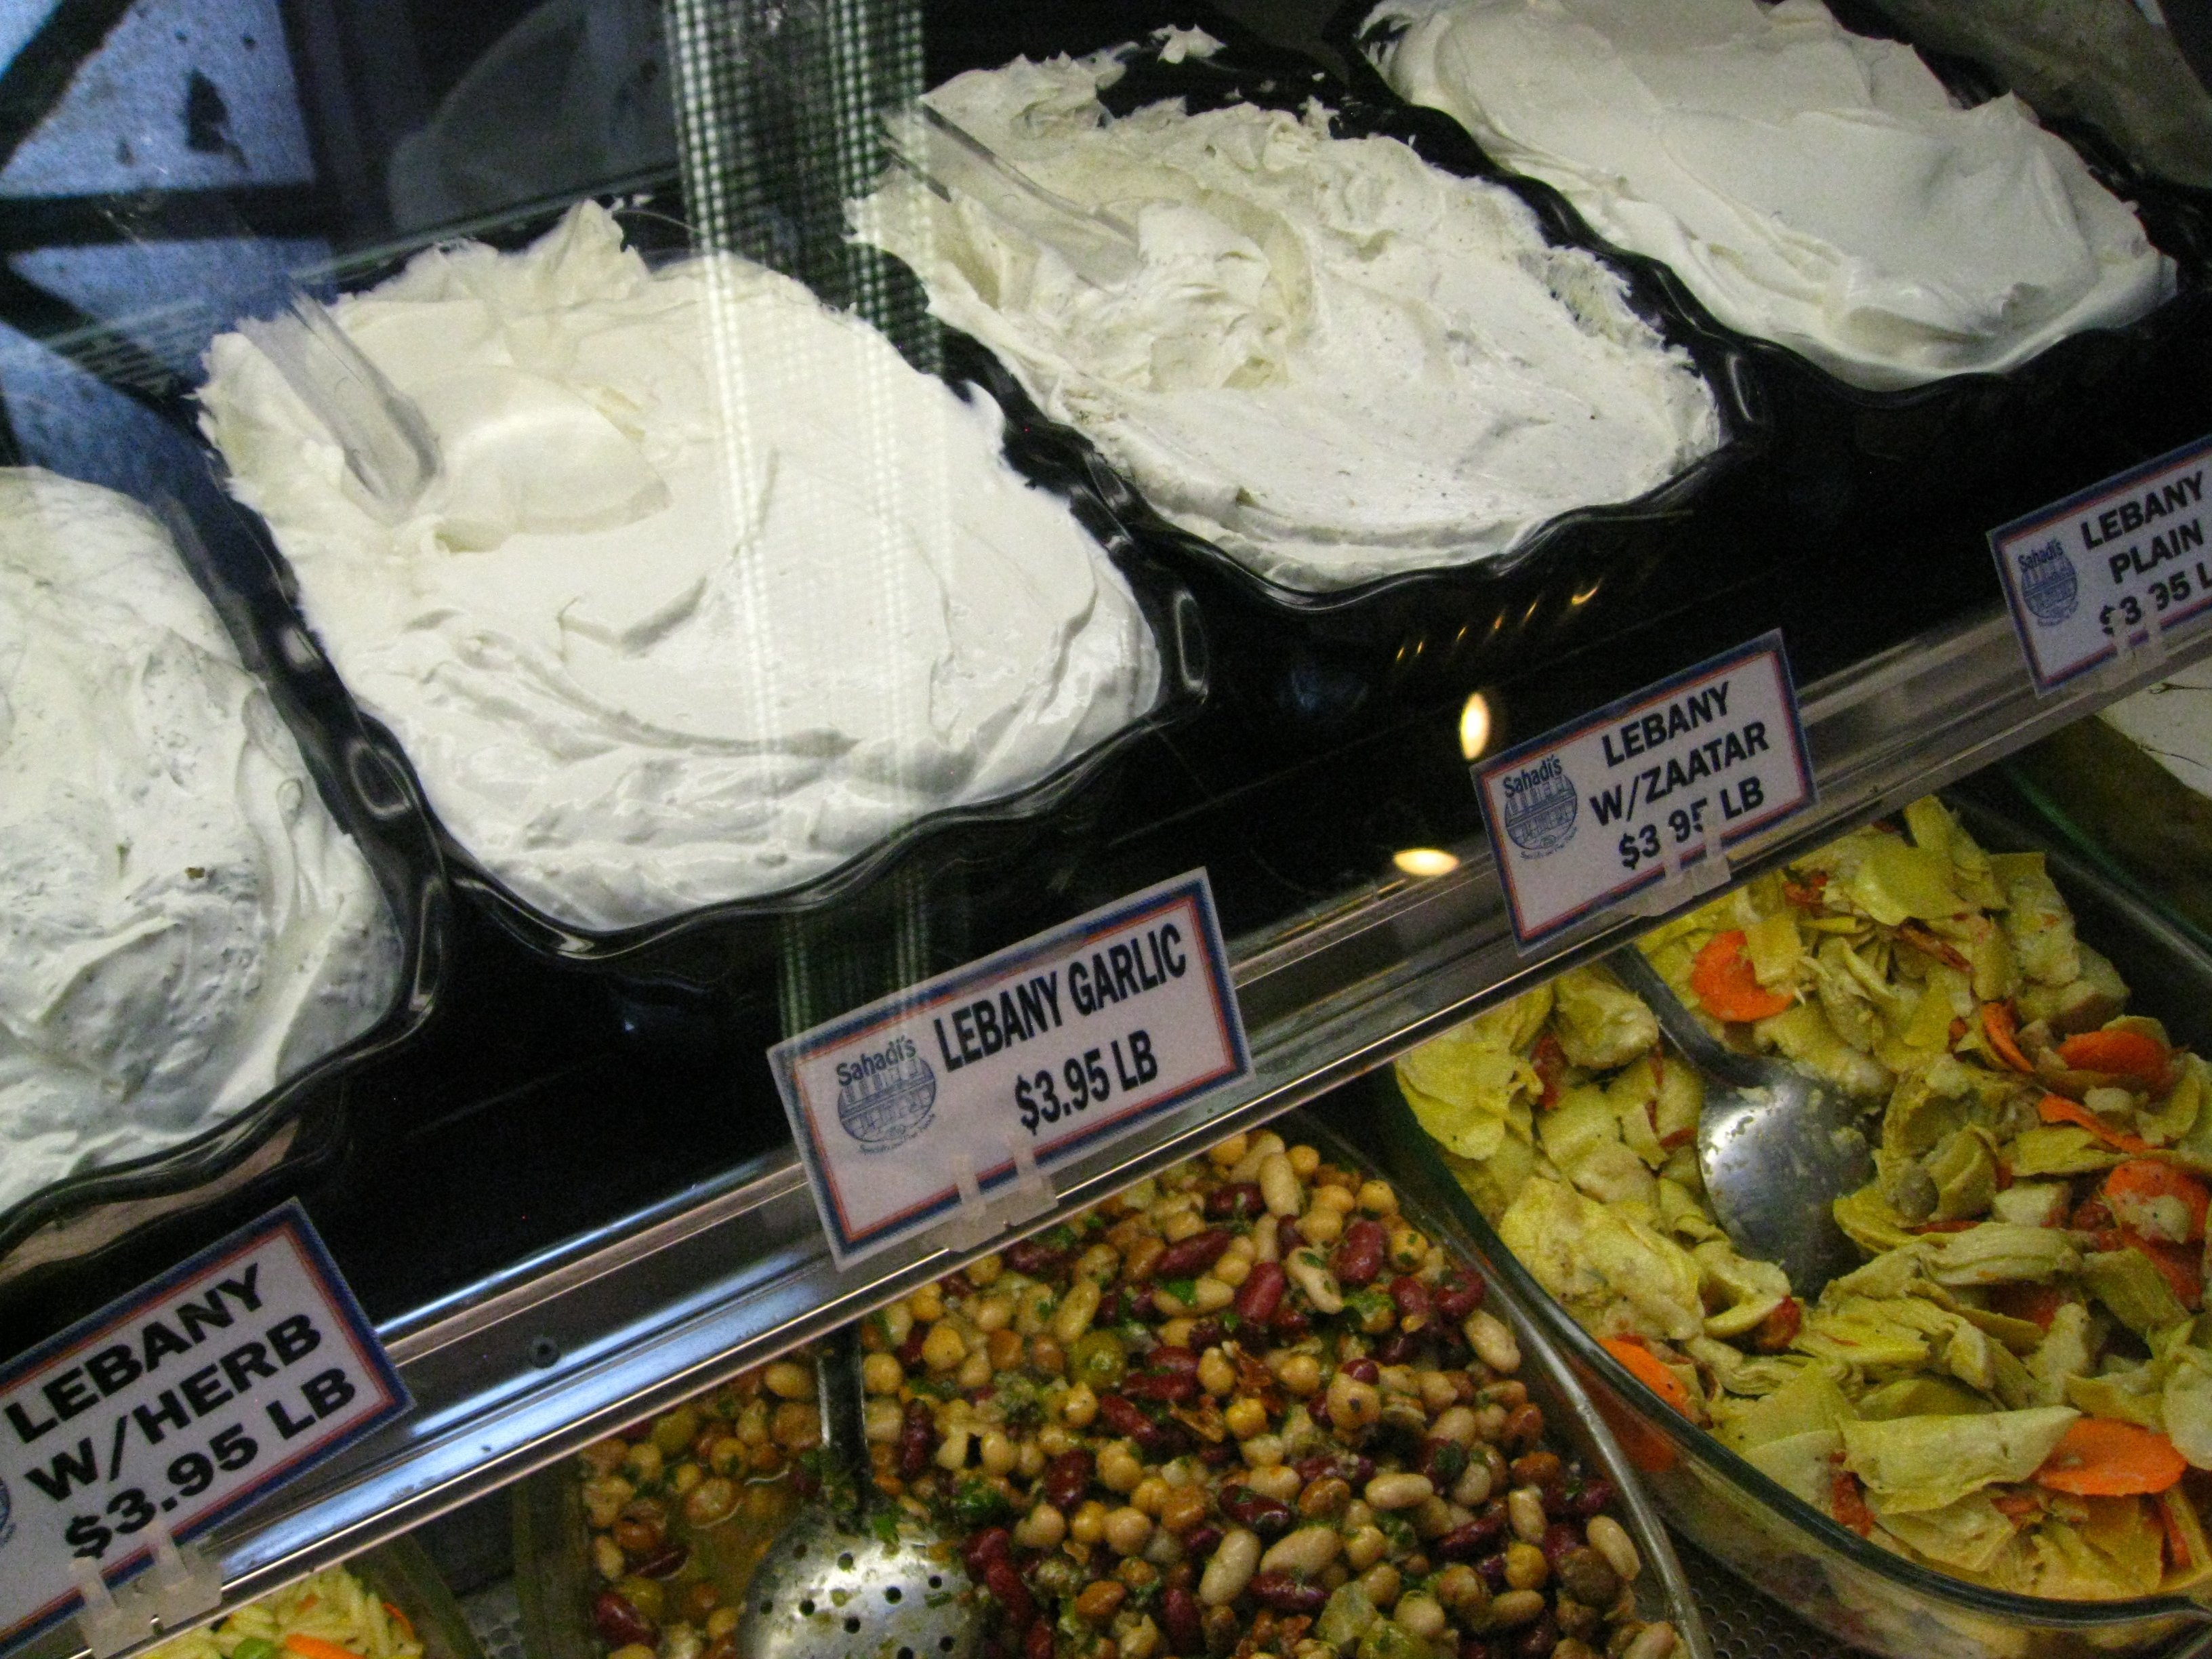 Sahadi's Specialty and Fine Foods, Brooklyn: See 39 reviews, articles, and photos of Sahadi's Specialty and Fine Foods, ranked No.9 on TripAdvisor among 99 attractions in Brooklyn.